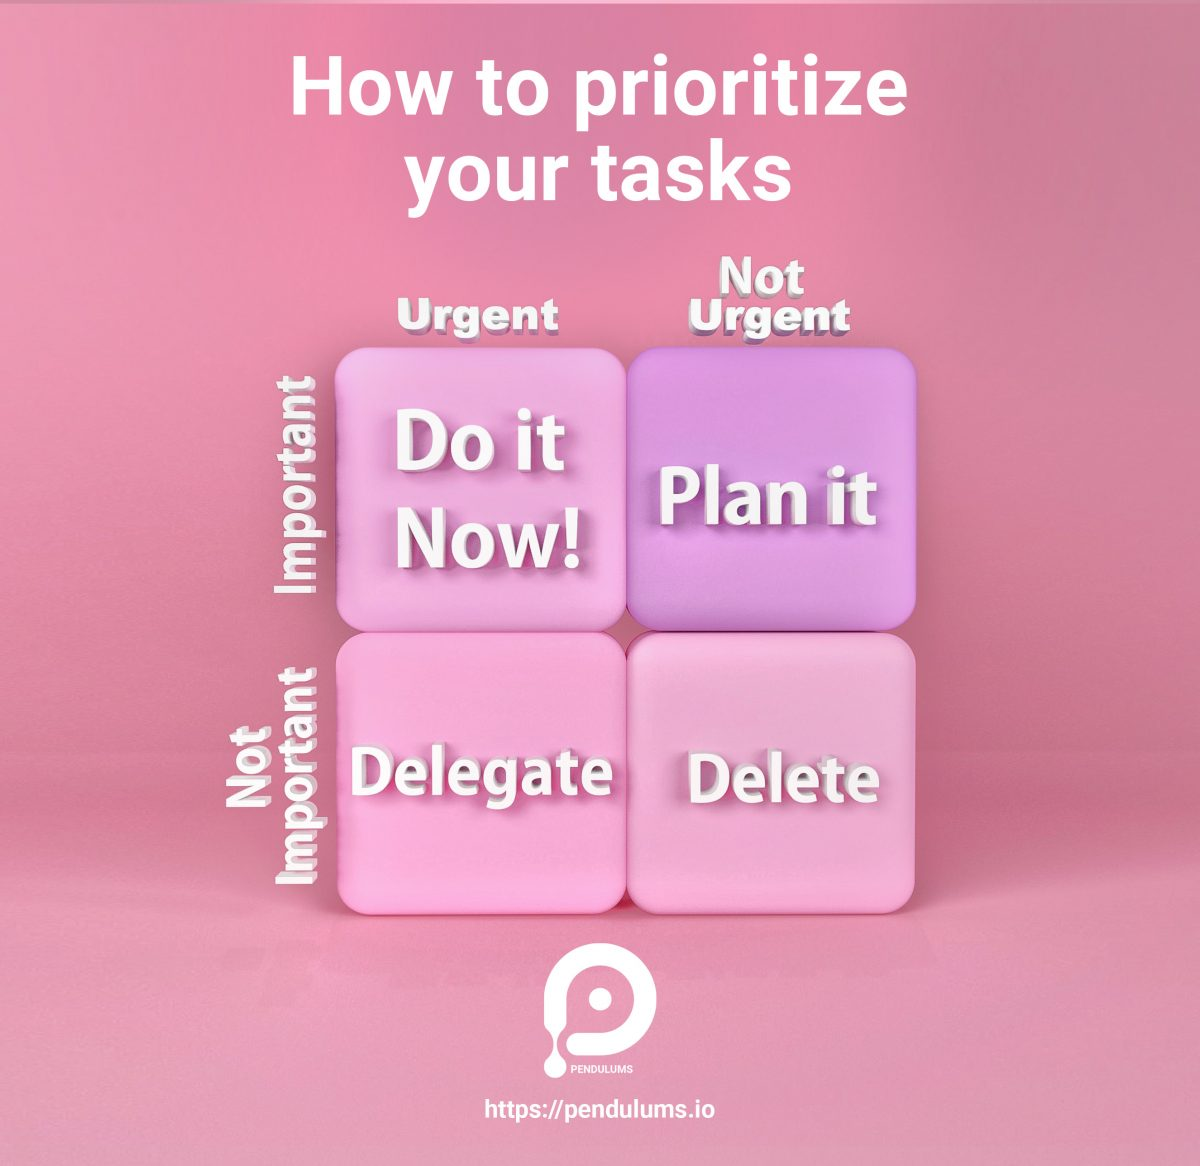 Make a daily to-do list and prioritize your tasks